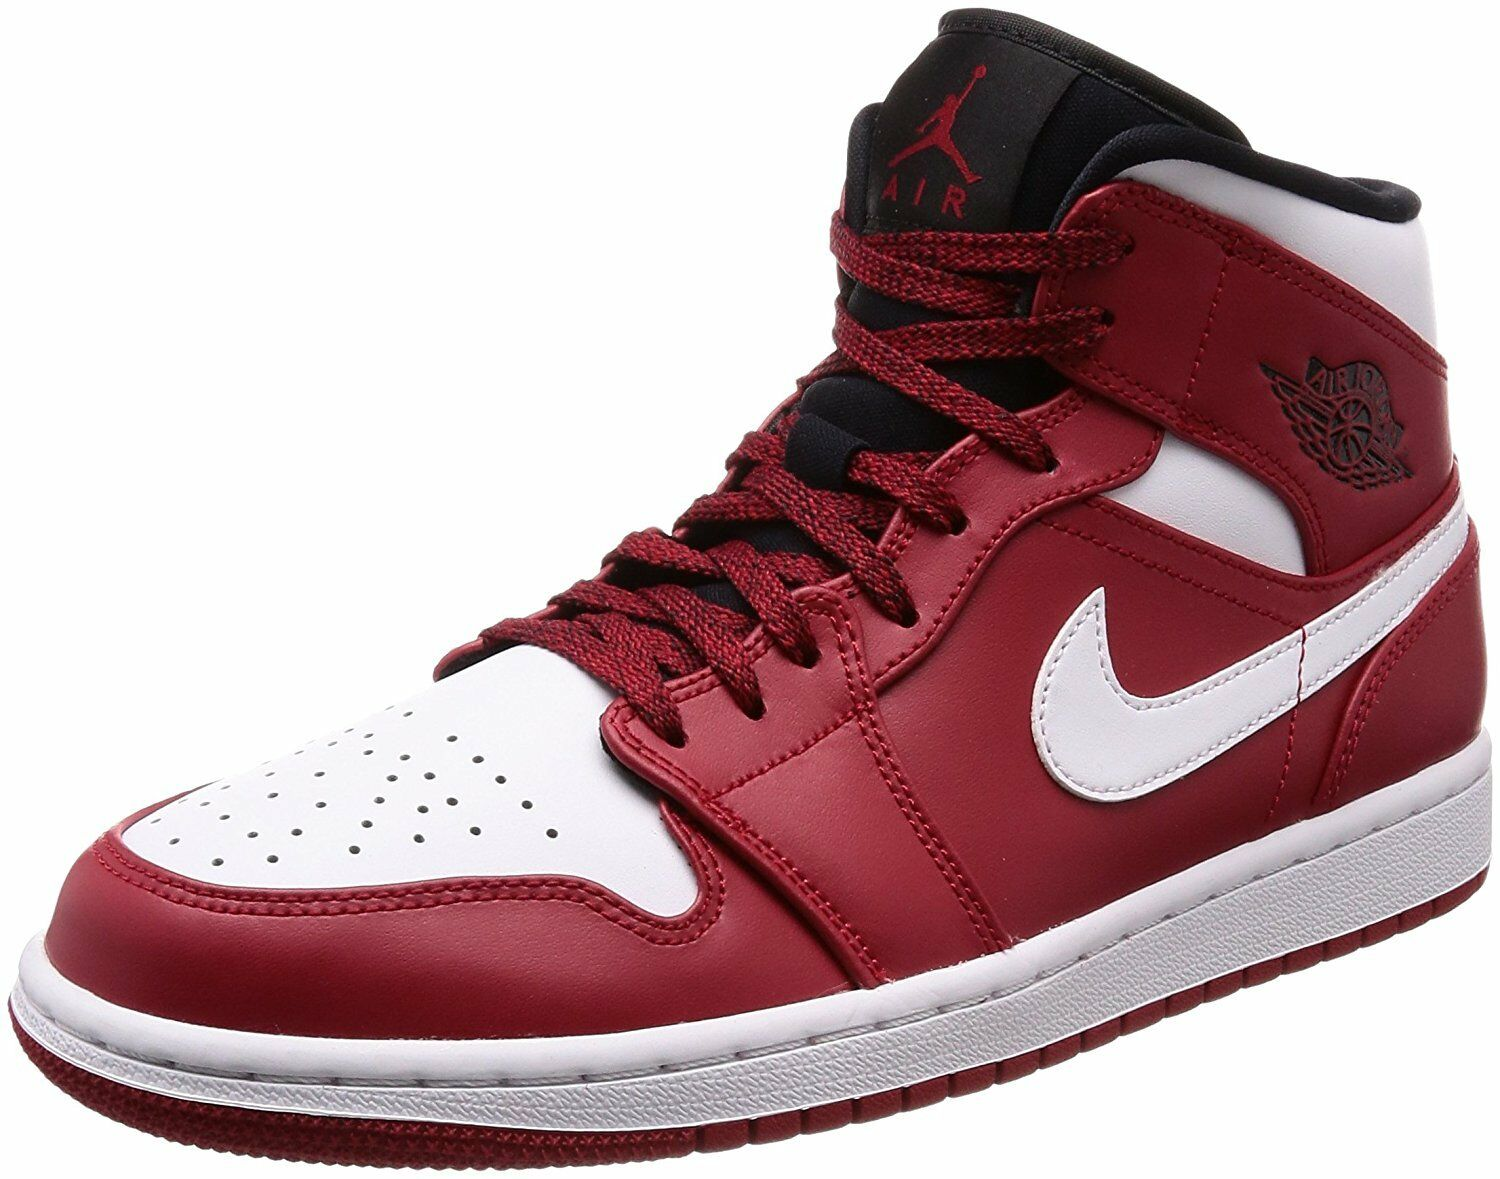 Jordan Mid 1 Gym Red White-Black (554724 605)